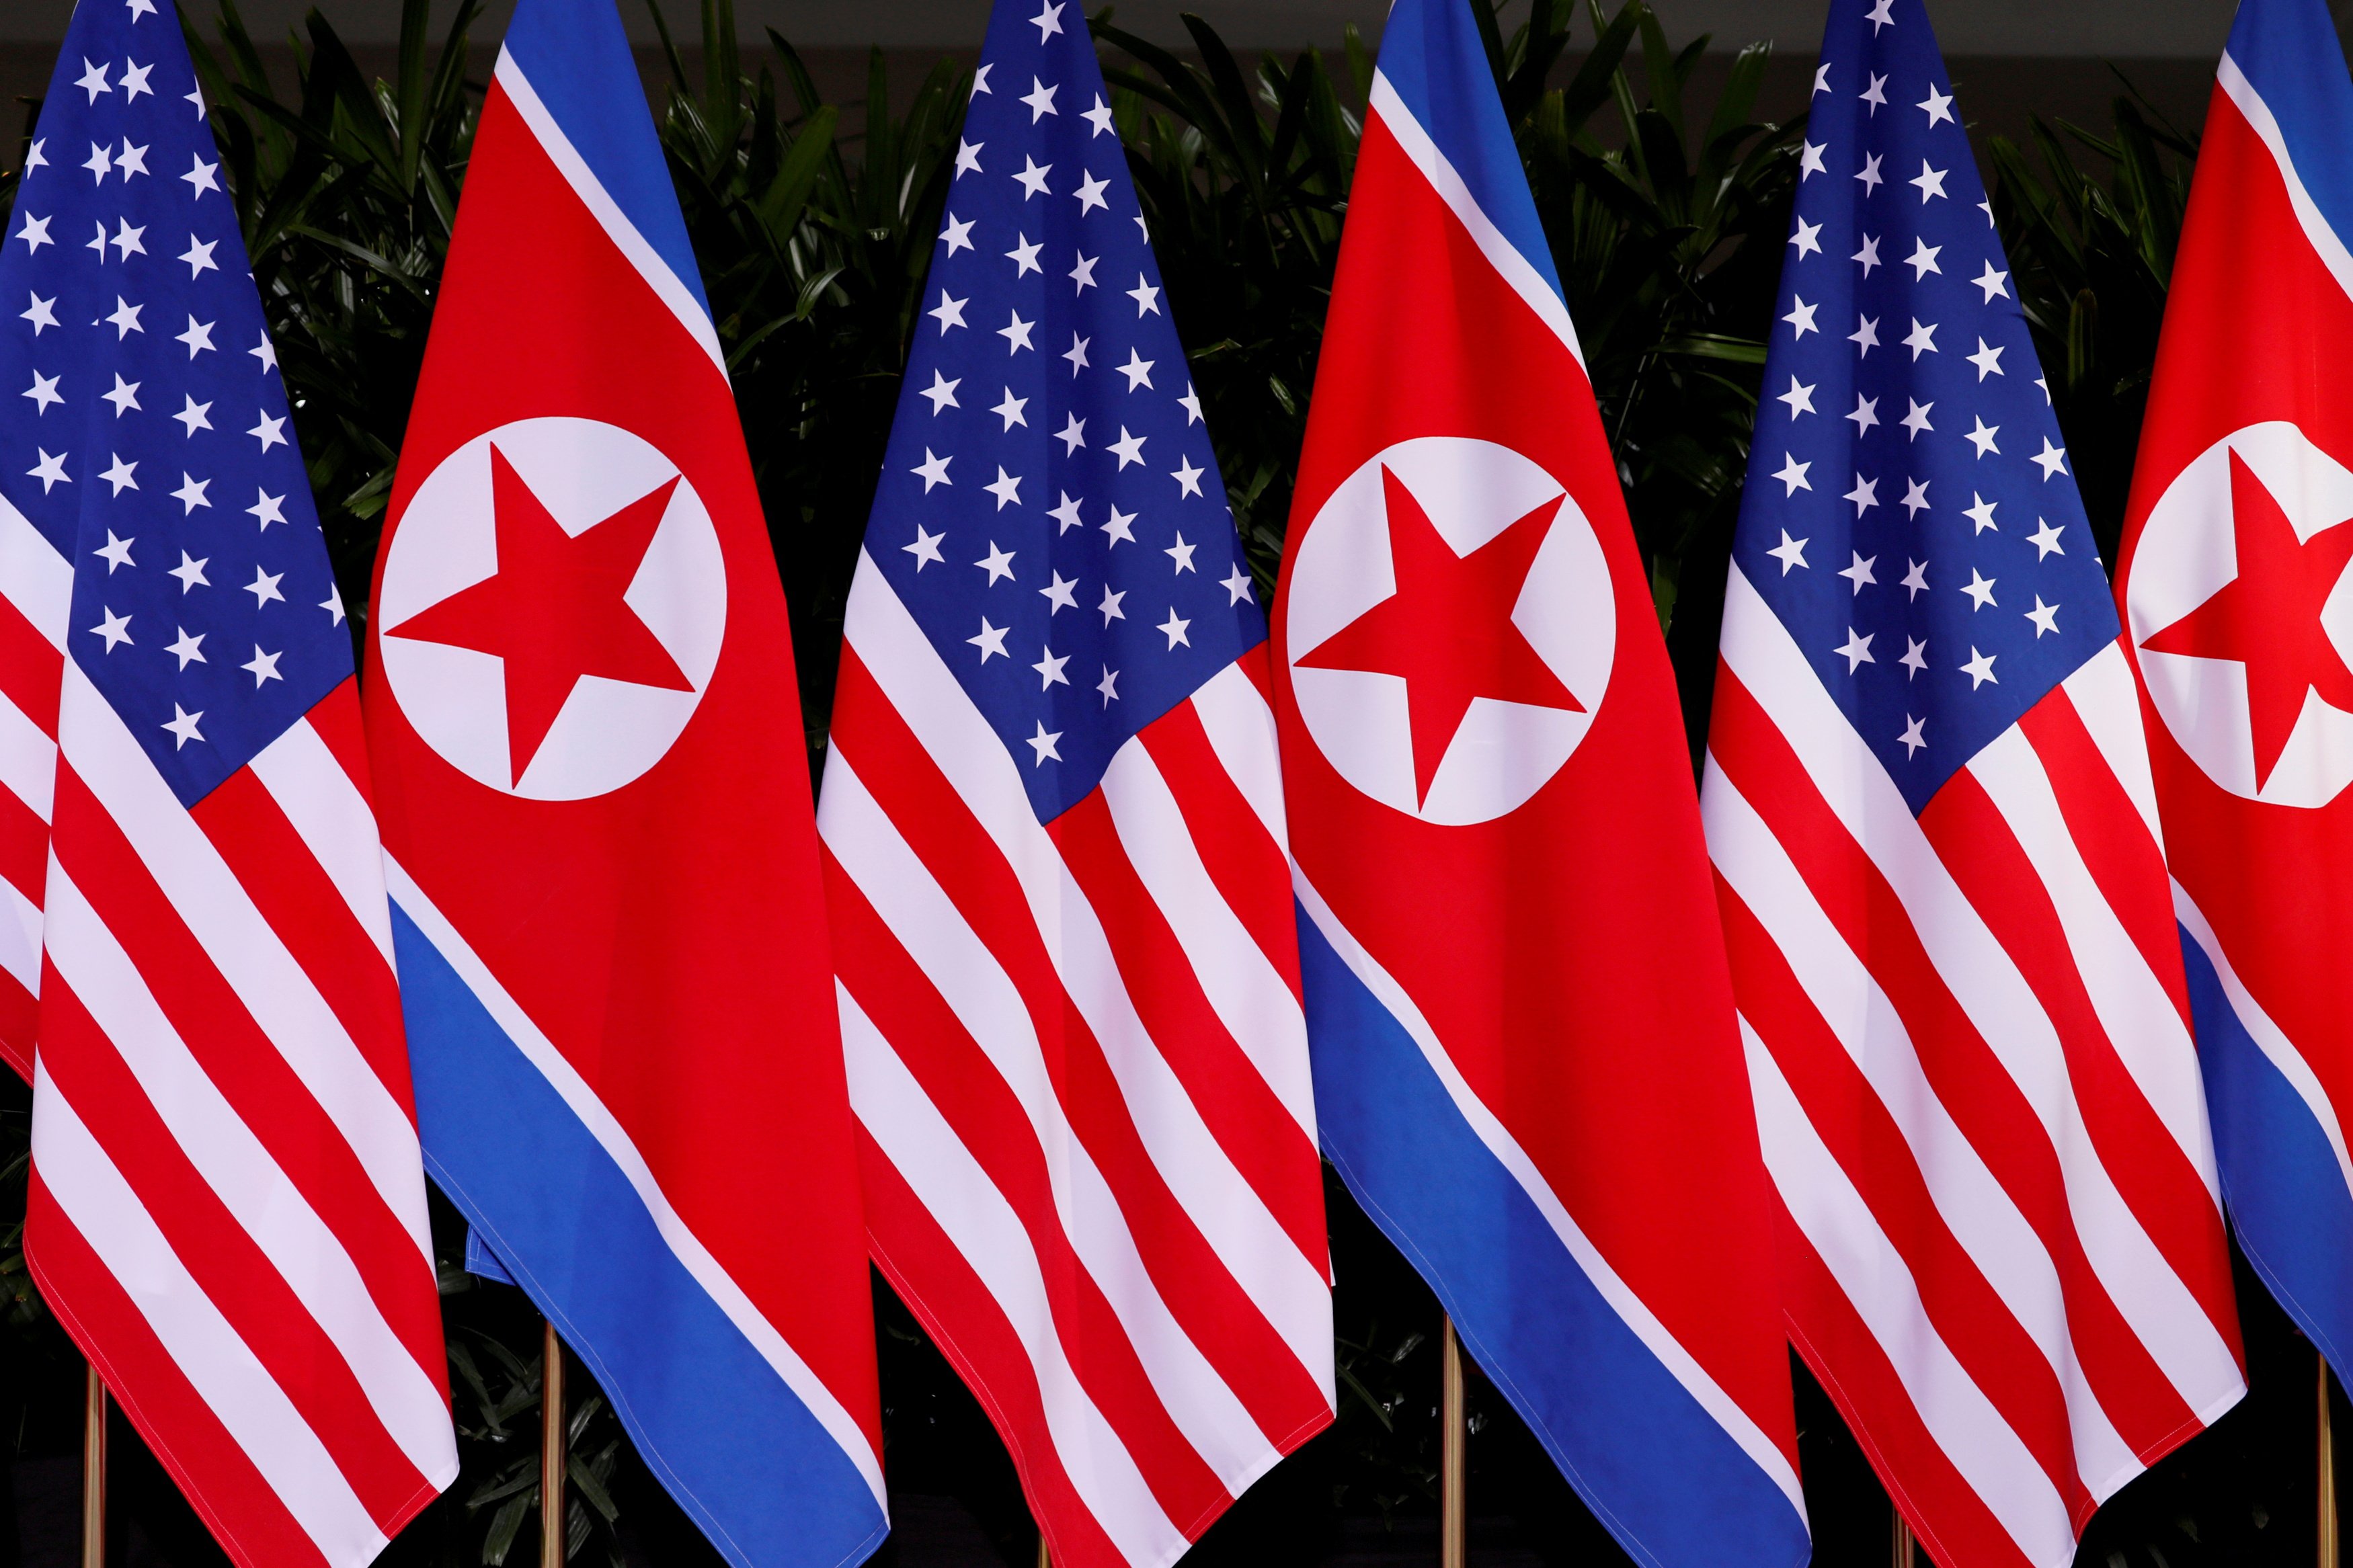 U.S. and North Korean national flags are seen at the Capella Hotel on Sentosa island in Singapore June 12, 2018. REUTERS/Jonathan Ernst